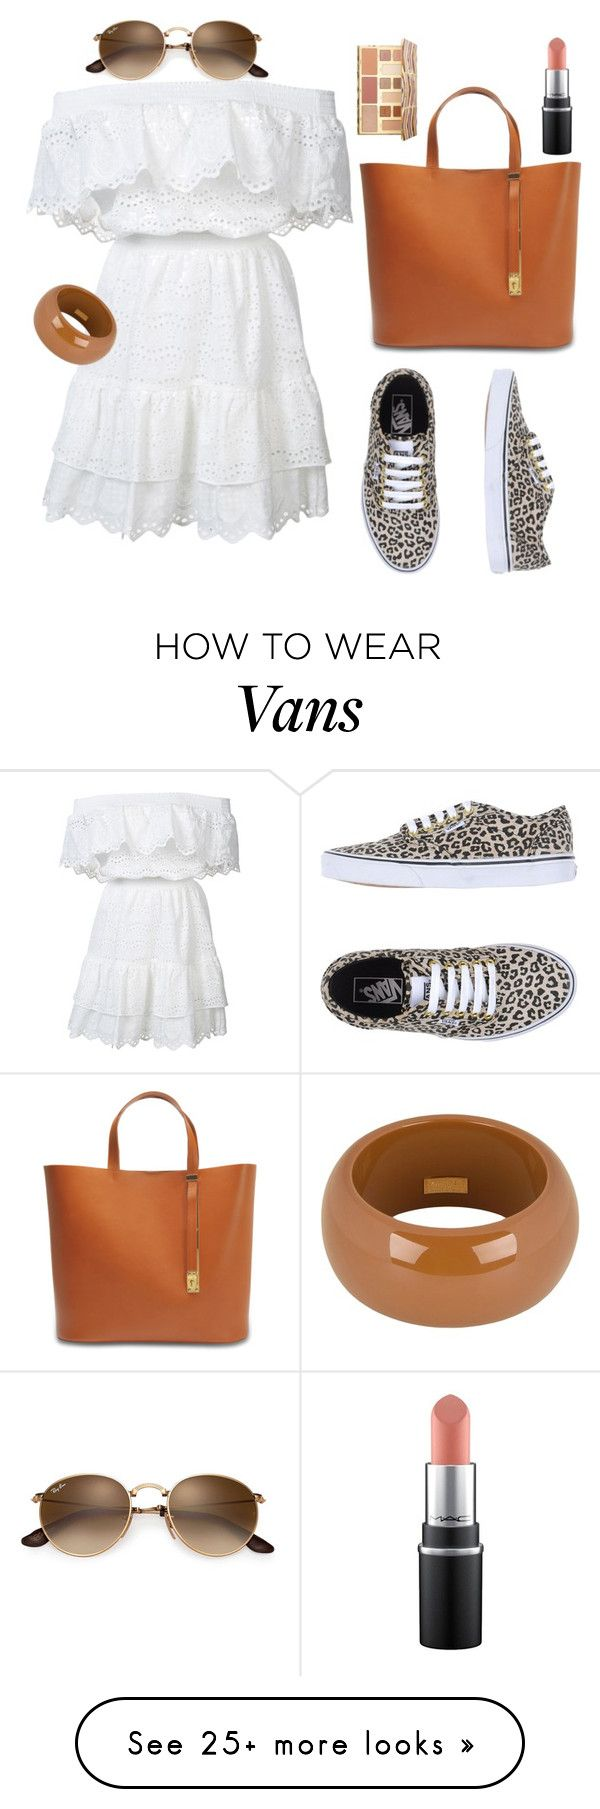 """""""Untitled #312"""" by ladybunny88 on Polyvore featuring Vans, LoveShackFancy, Sophie Hulme, Dsquared2 and Sephora Collection"""